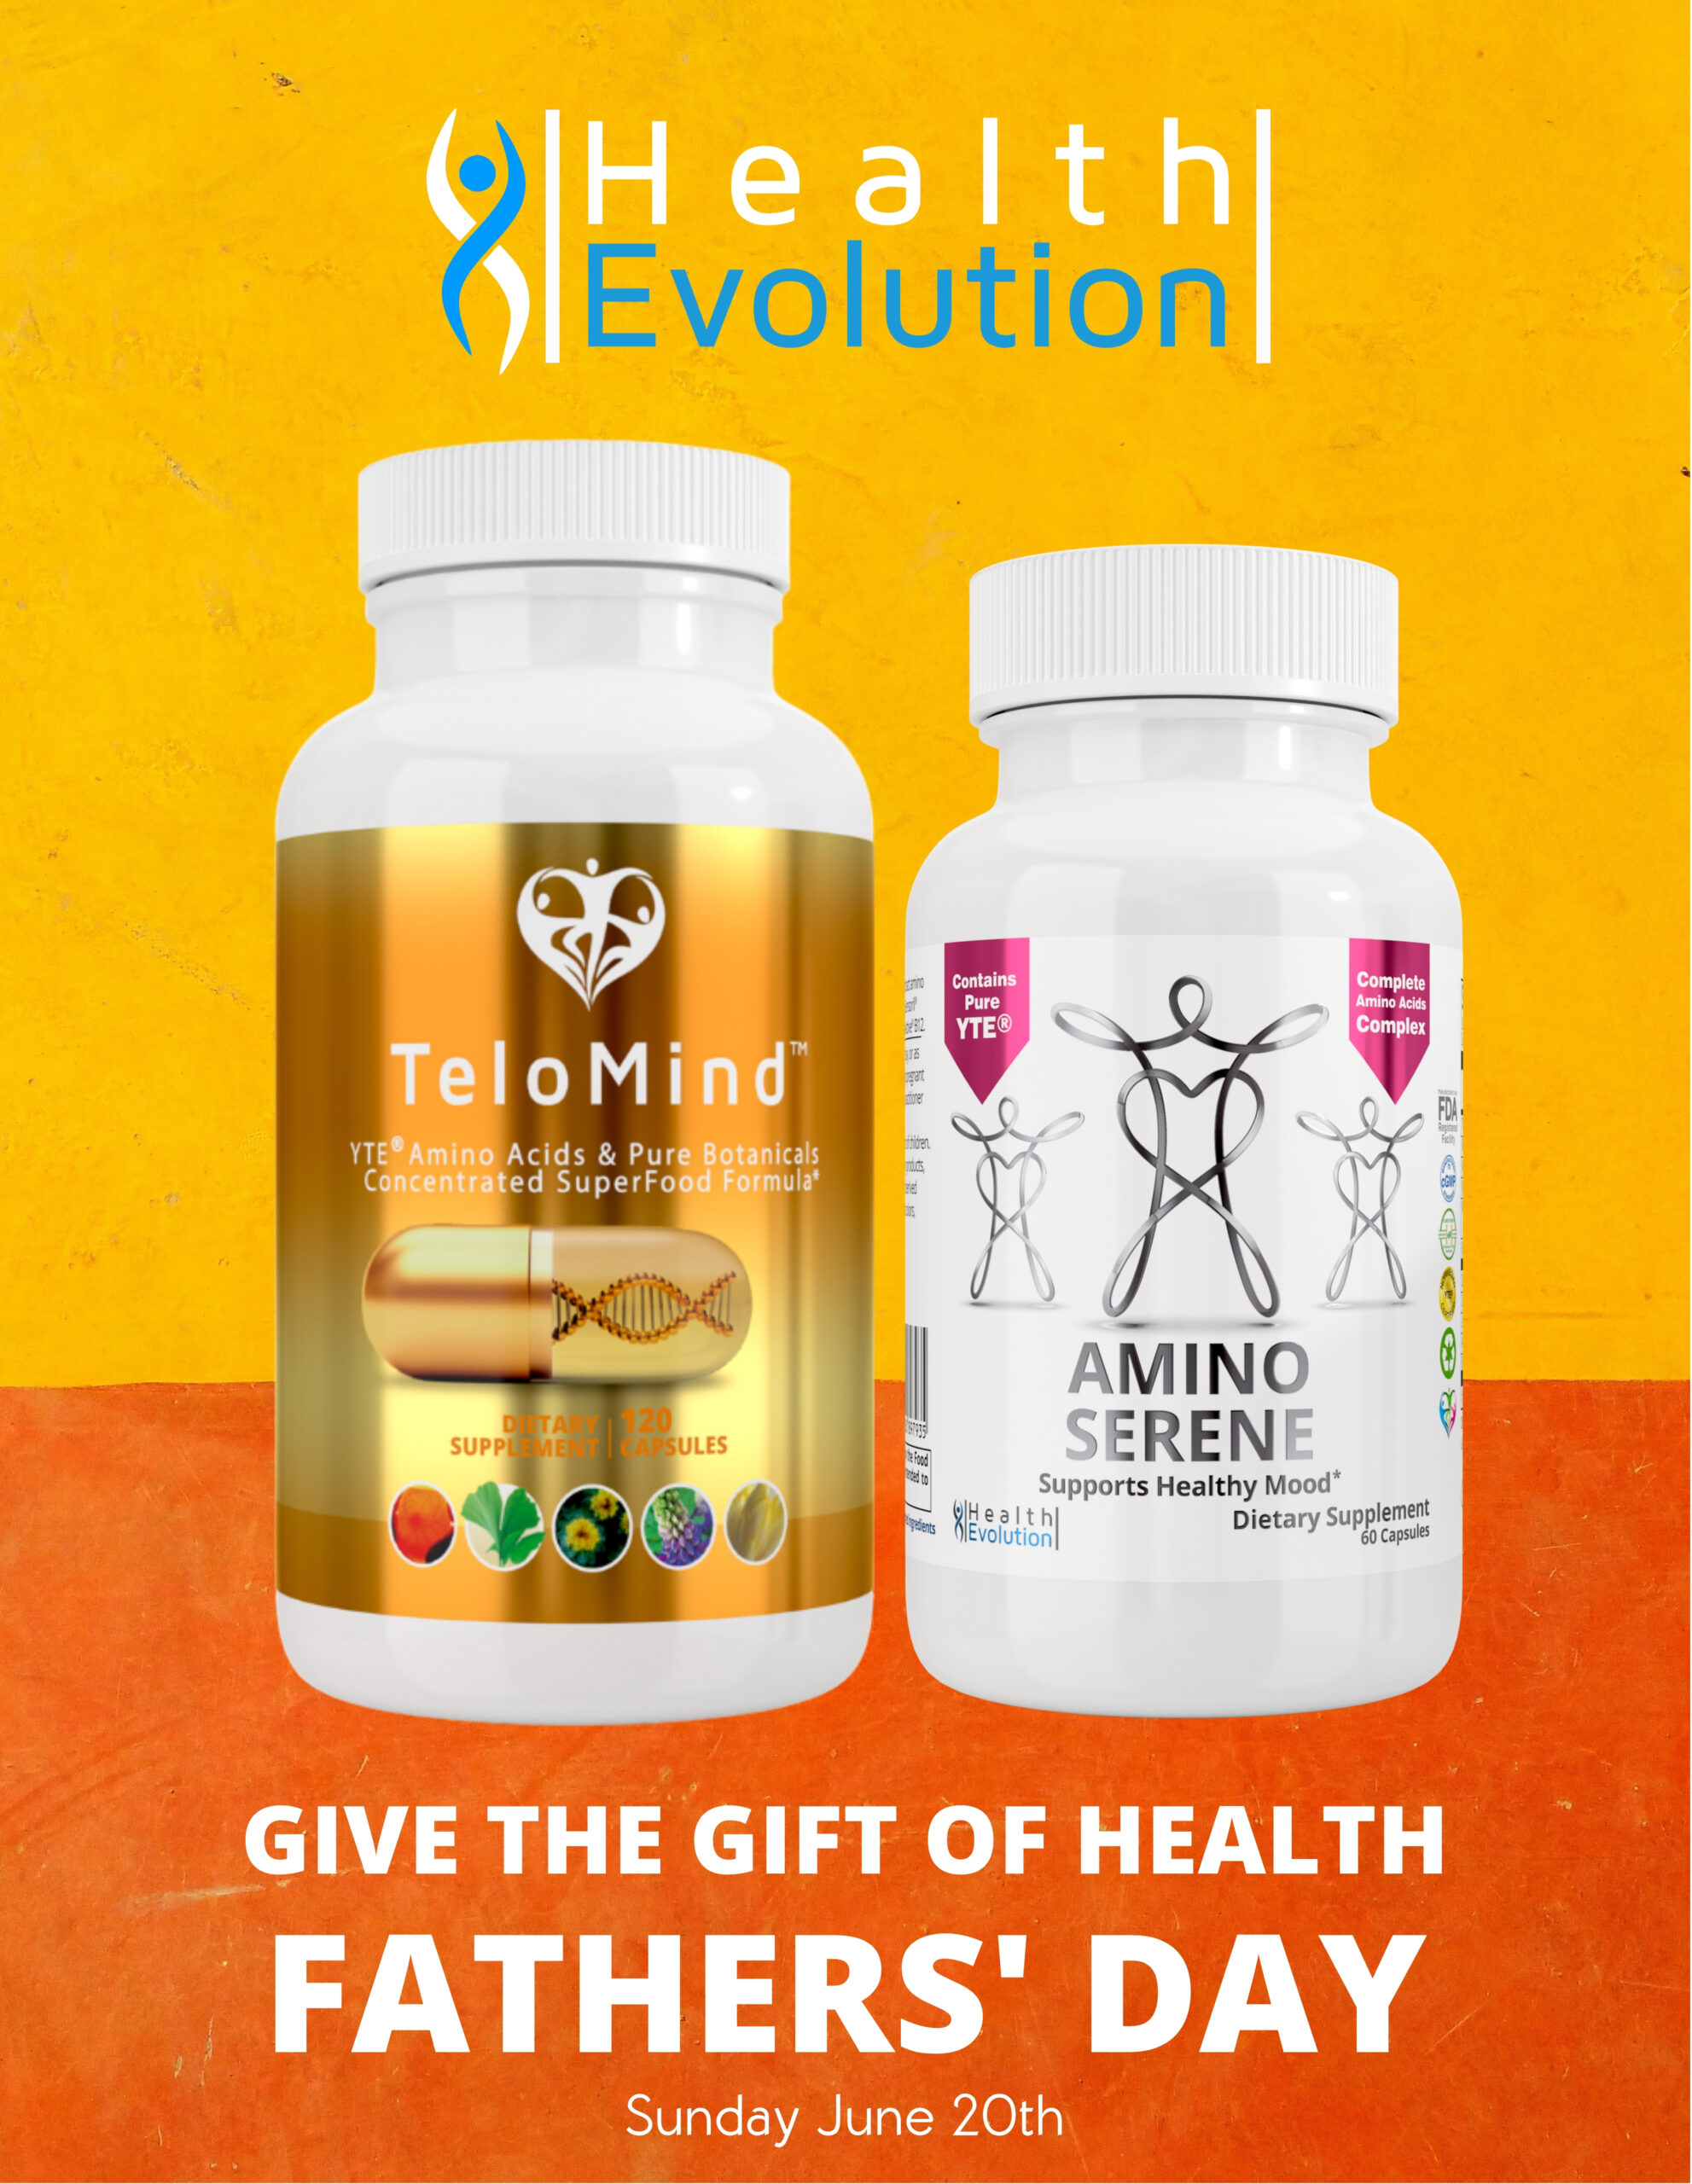 Give the gift of health this Fathers' Day and every day